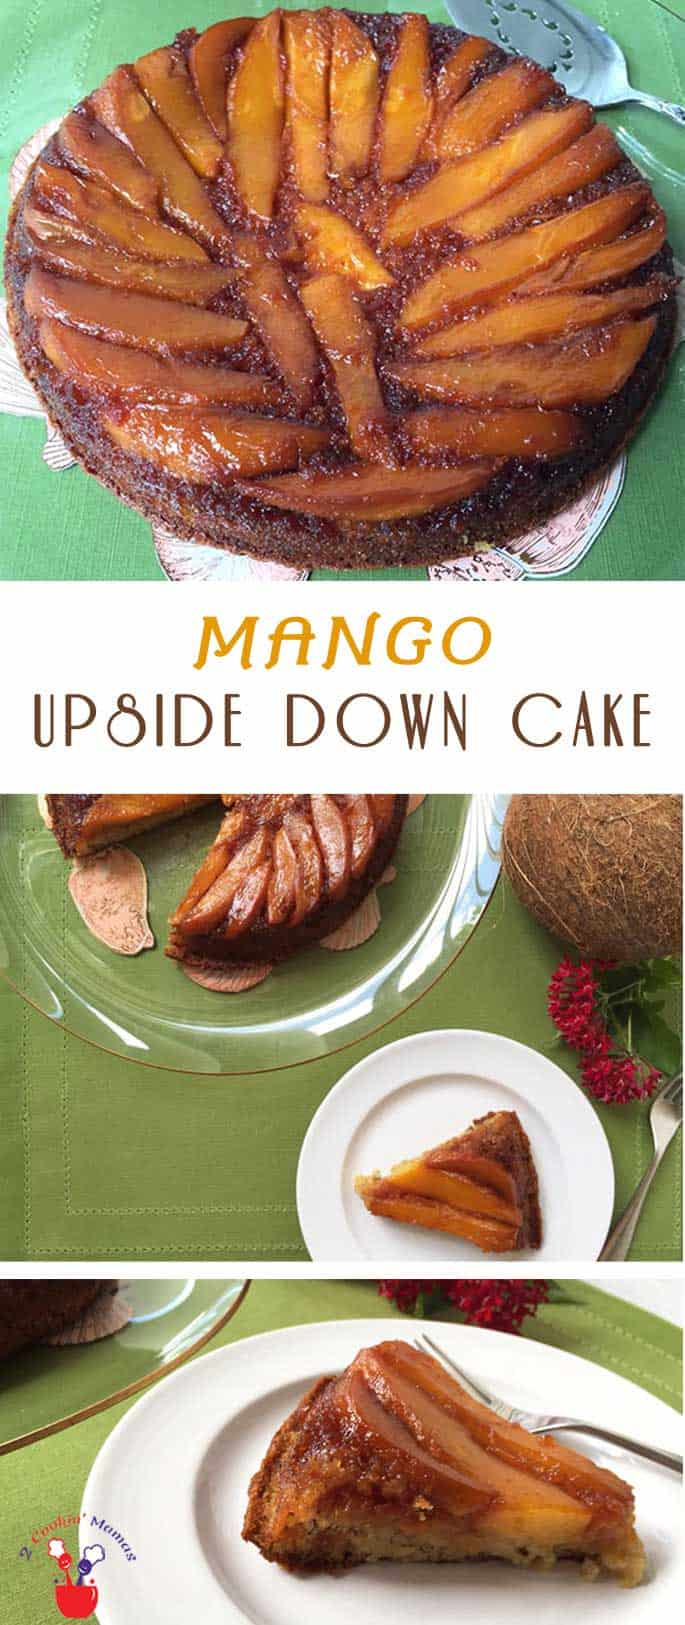 What's better than fresh mango? Fresh mango atop a moist & delicious rum cake! Impress guests with this easy & beautiful Mango Upside Down Cake recipe. #dessert #mango #upsidedowncake #cake #rum